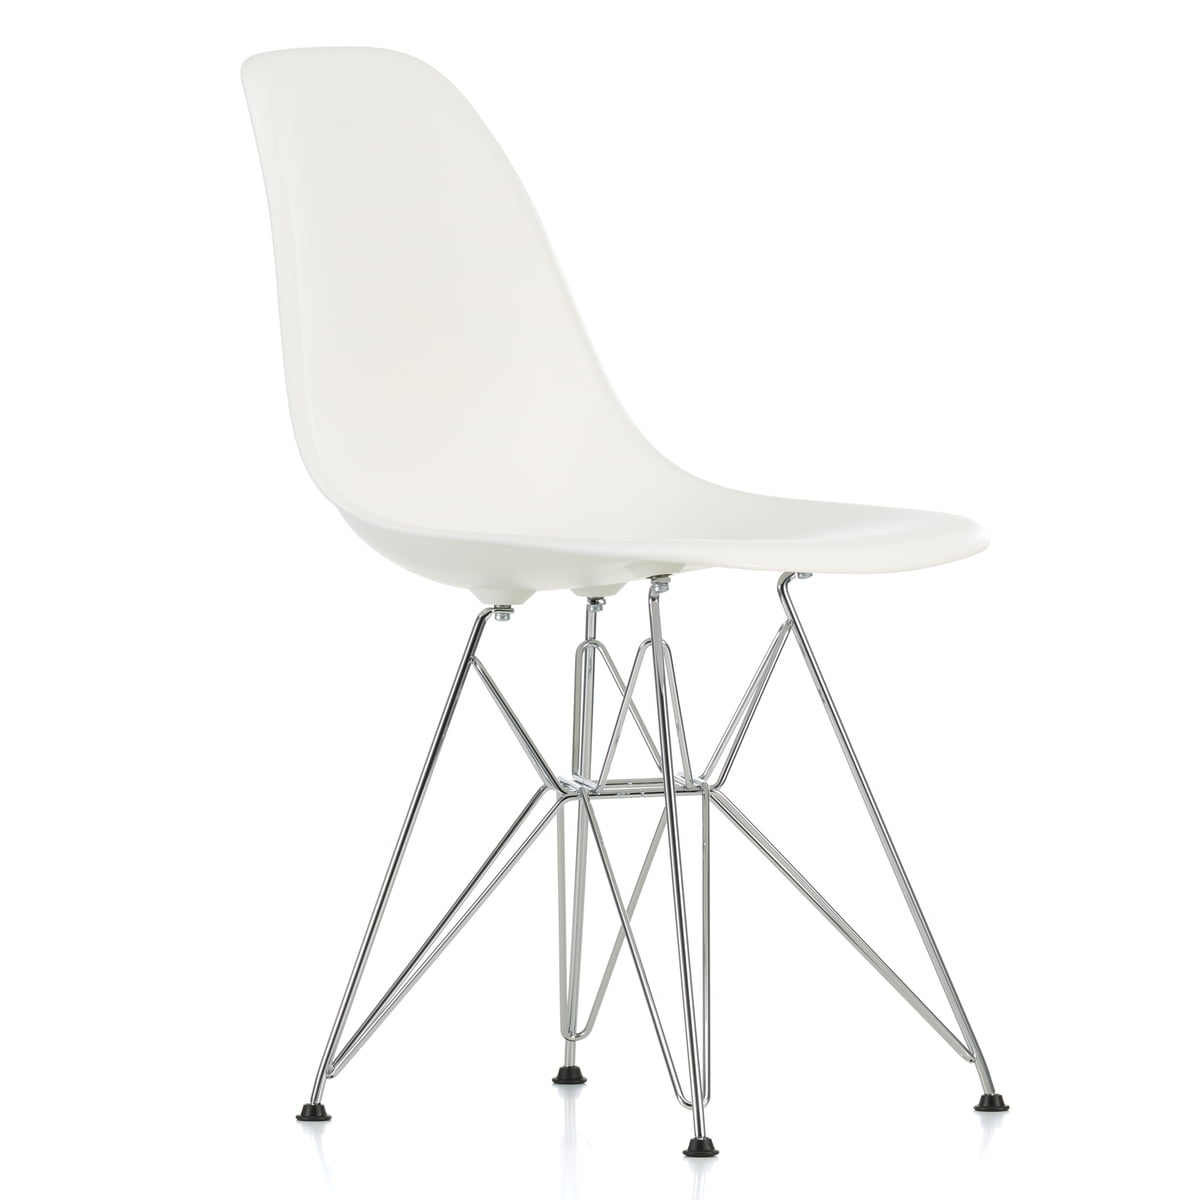 Vitra dsr eames plastic side chair in our shop for Eames chair vitra replica